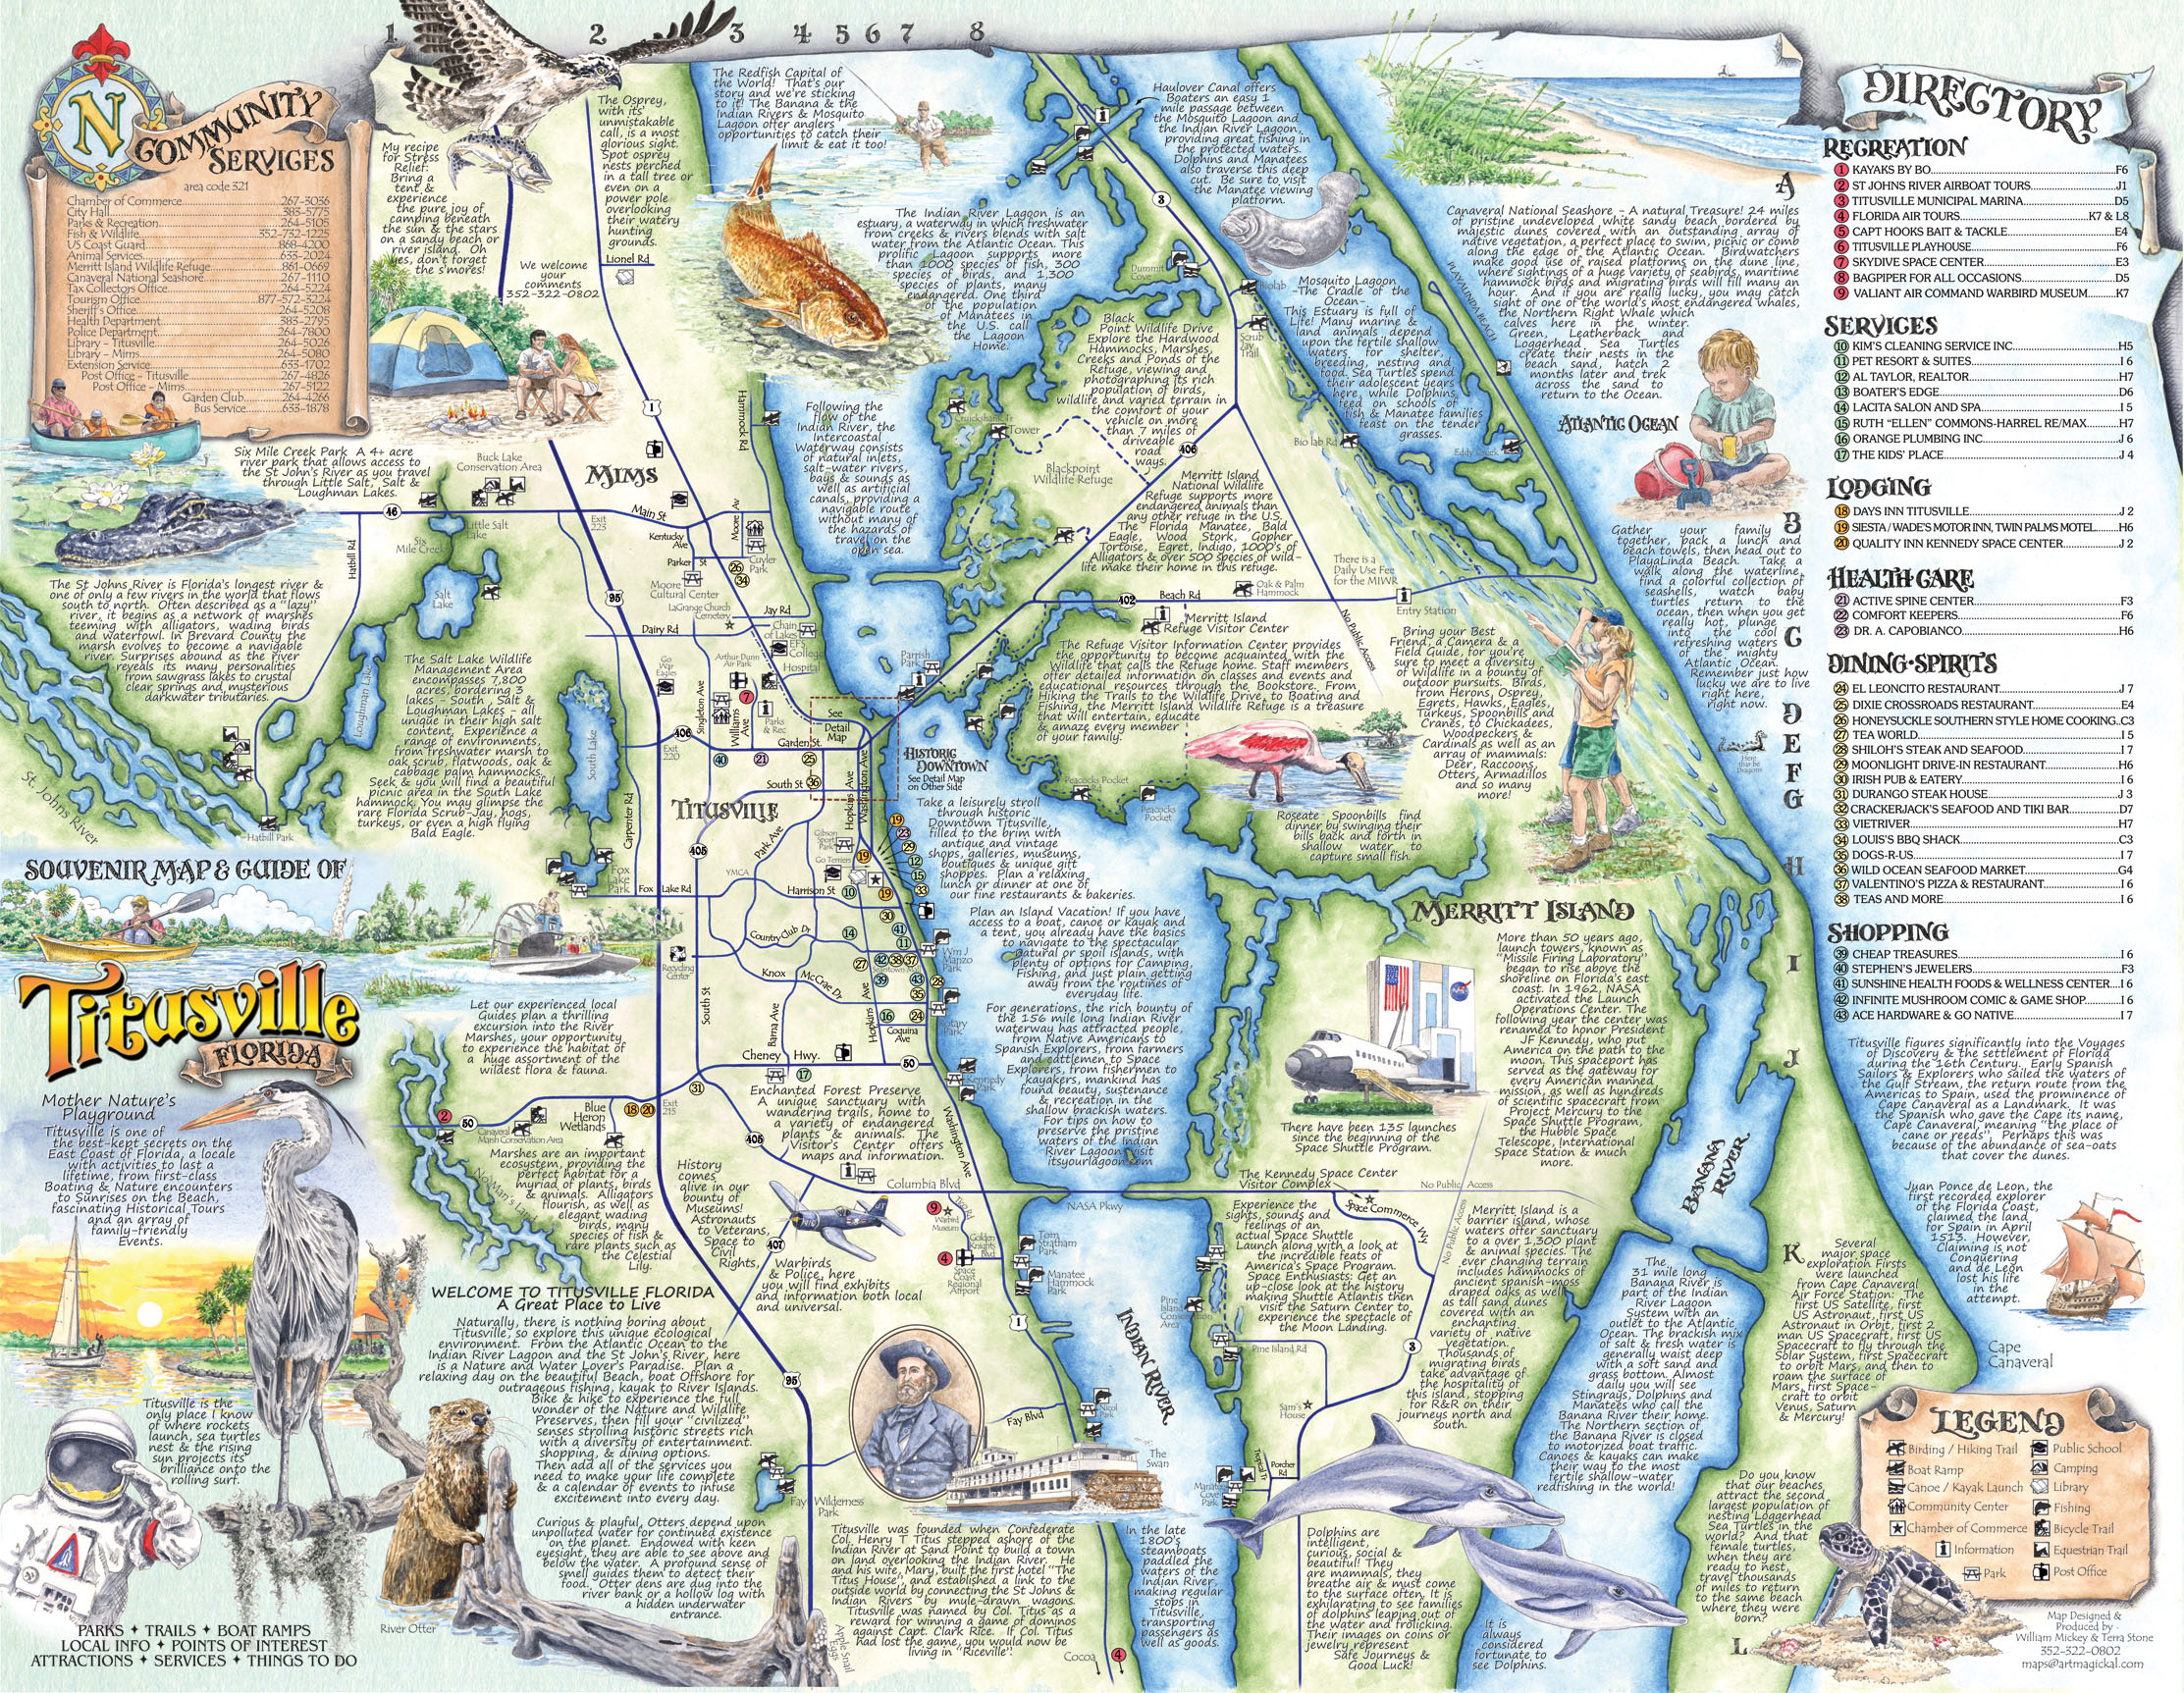 The Souvenir Map Guide Of Titusville